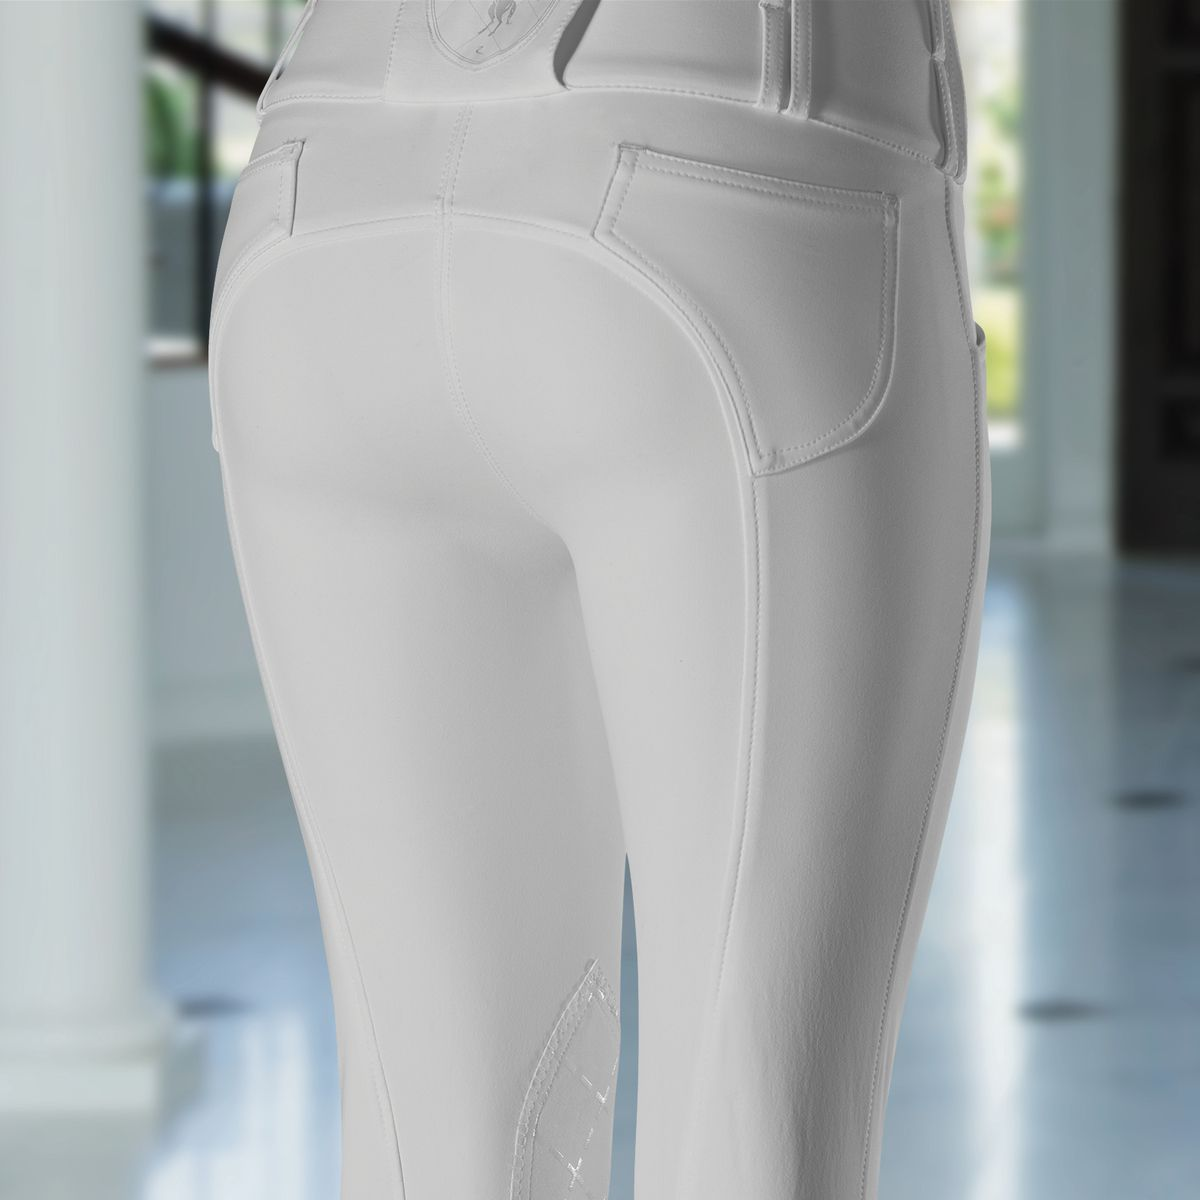 Horze-Desiree-Women-039-s-Knee-Patch-Riding-Breeches-with-High-Waist-and-Bi-Stretch thumbnail 28